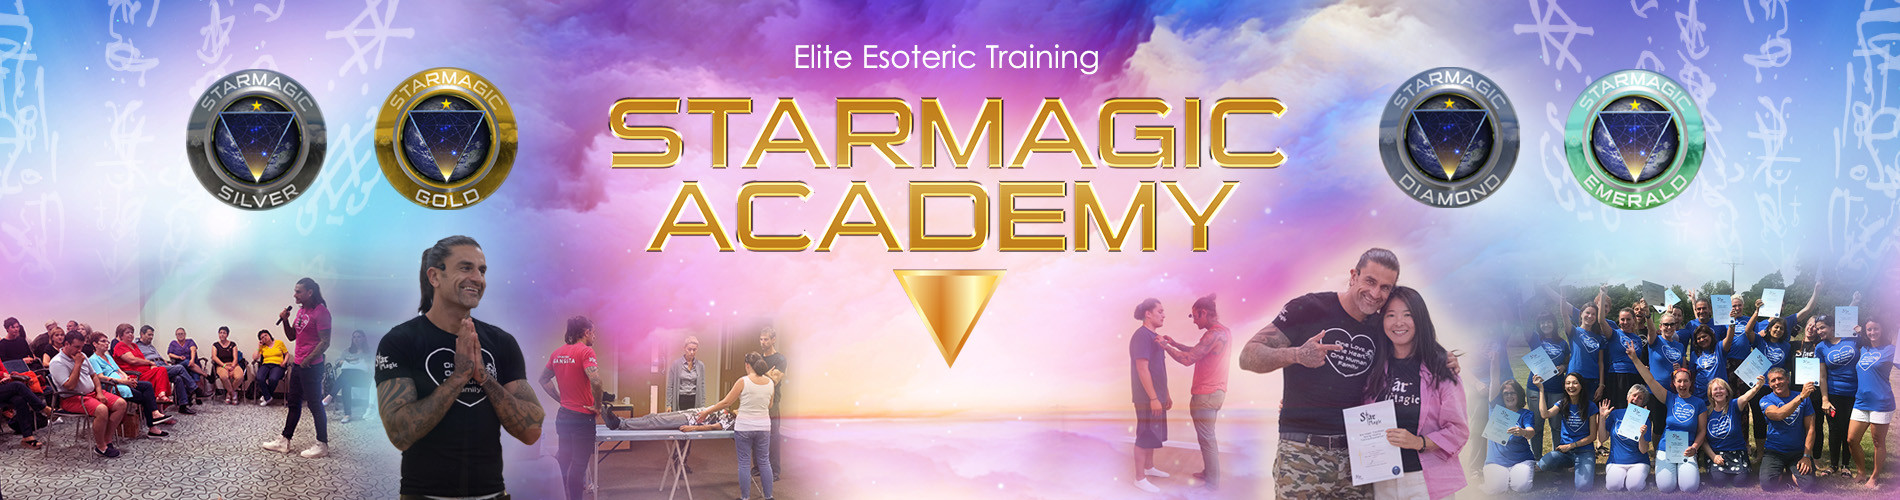 Star Magic Academy